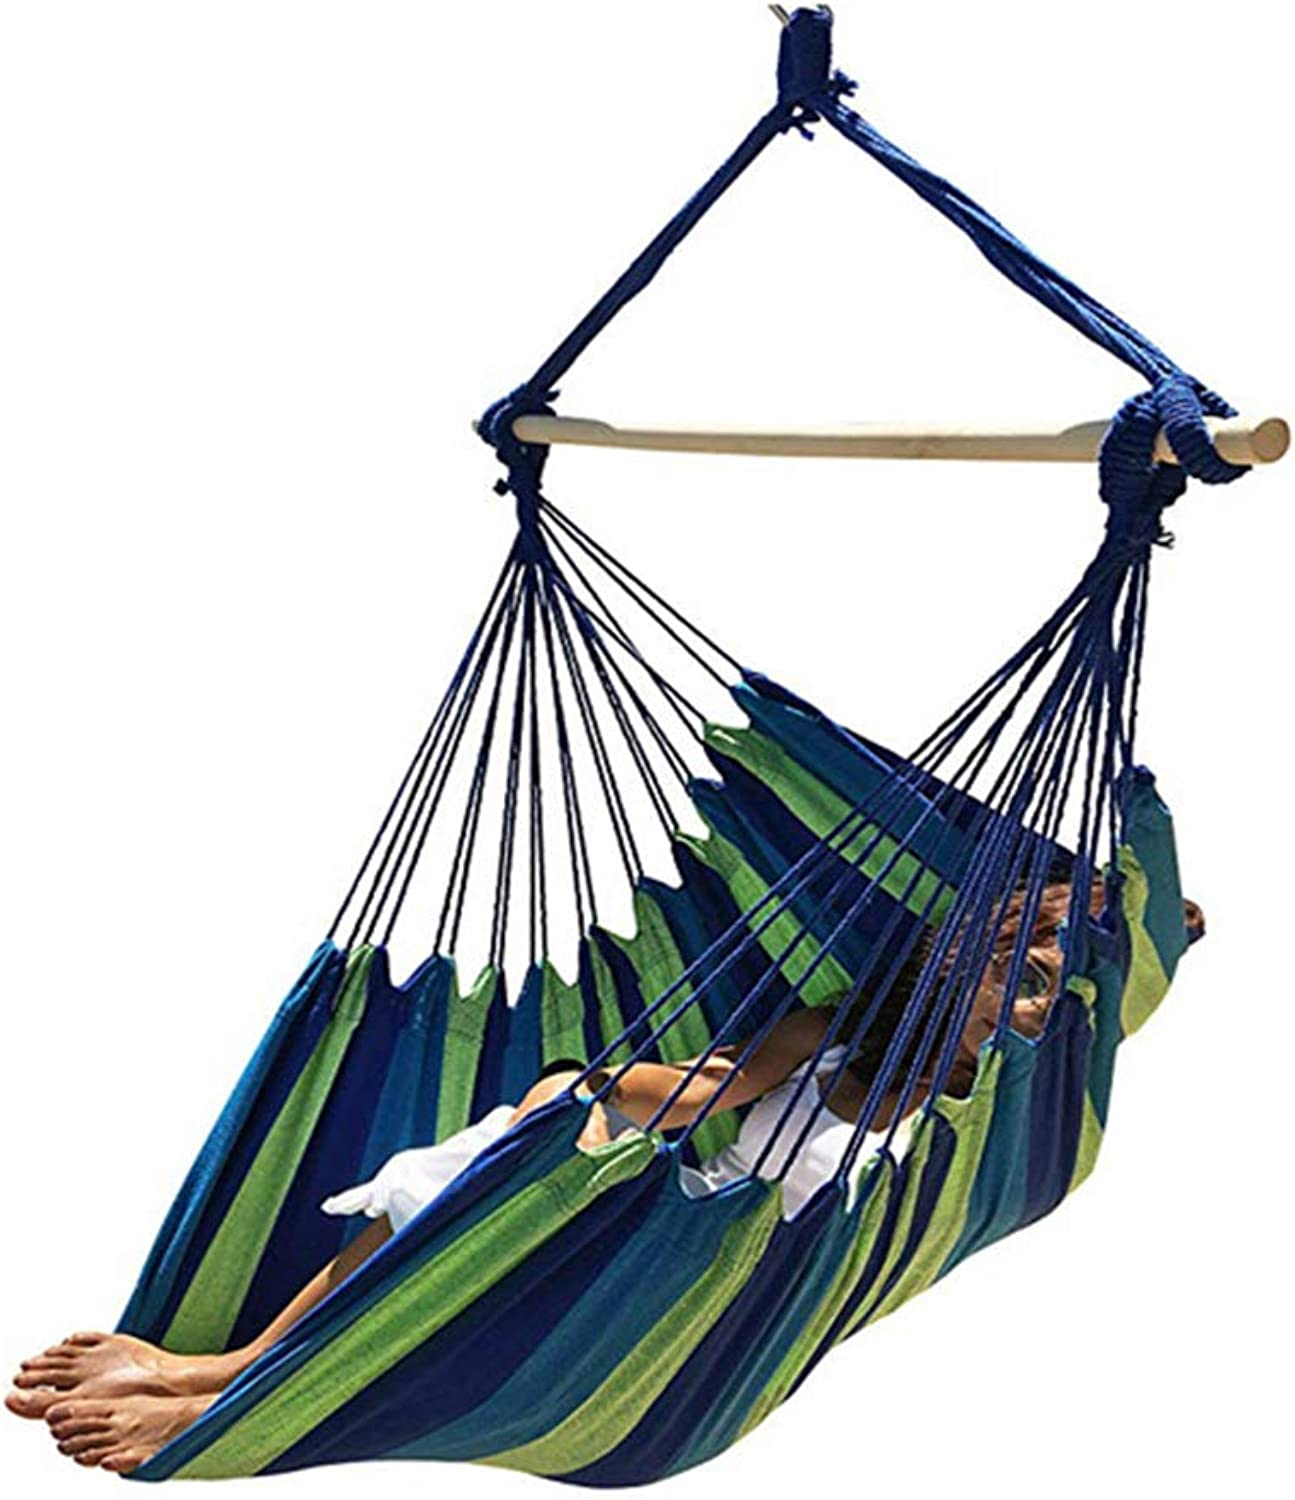 Large Brazilian Hammock Chair Quality Cotton Weave for Superior Comfort & Durability - Extra Long Bed - Hanging Chair for Yard, Bedroom, Porch, Indoor Outdoor